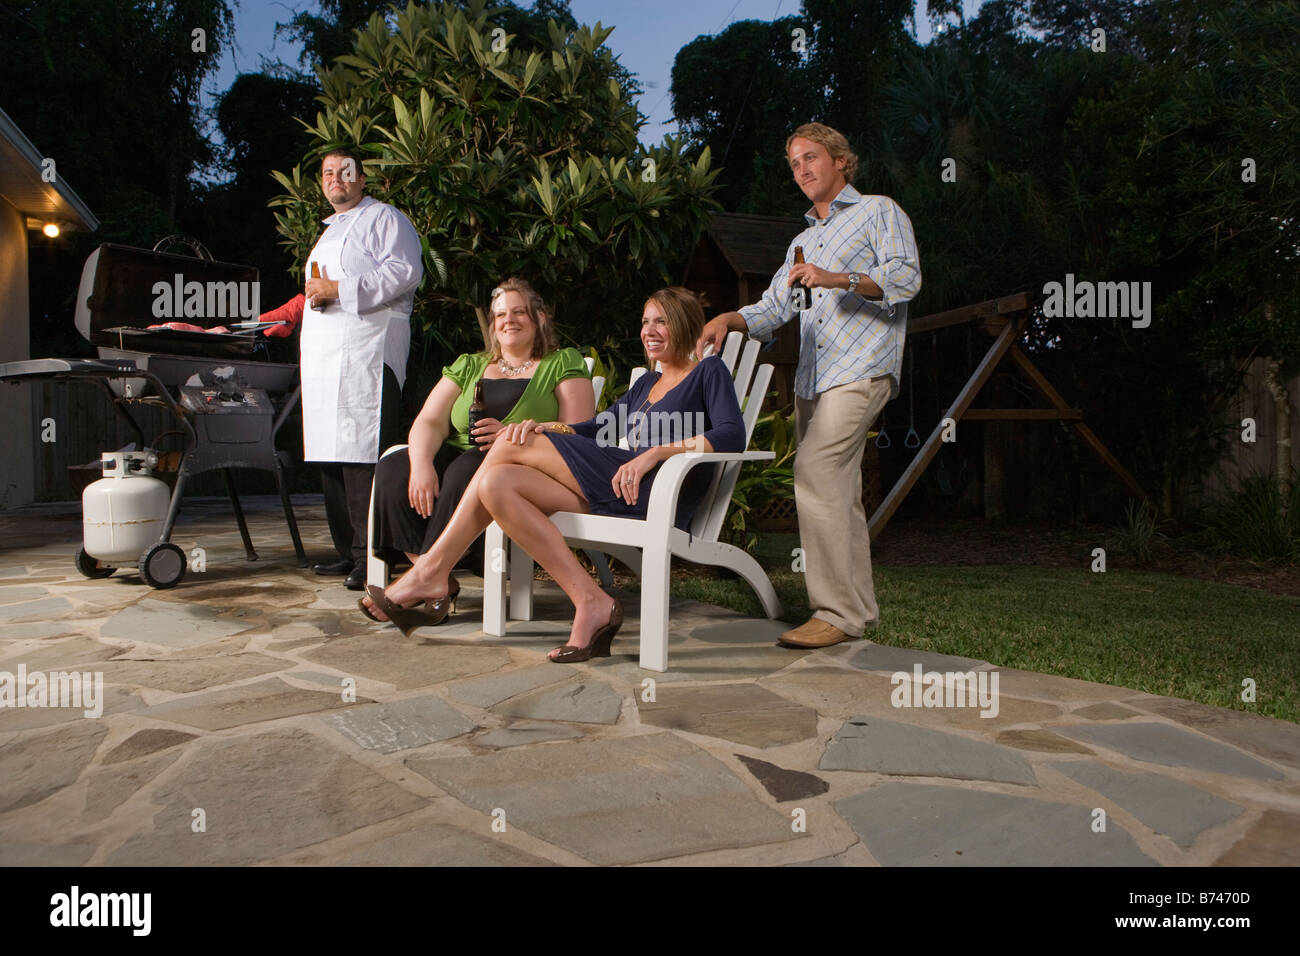 Four Friends Drinking Beer And Grilling On Backyard Patio